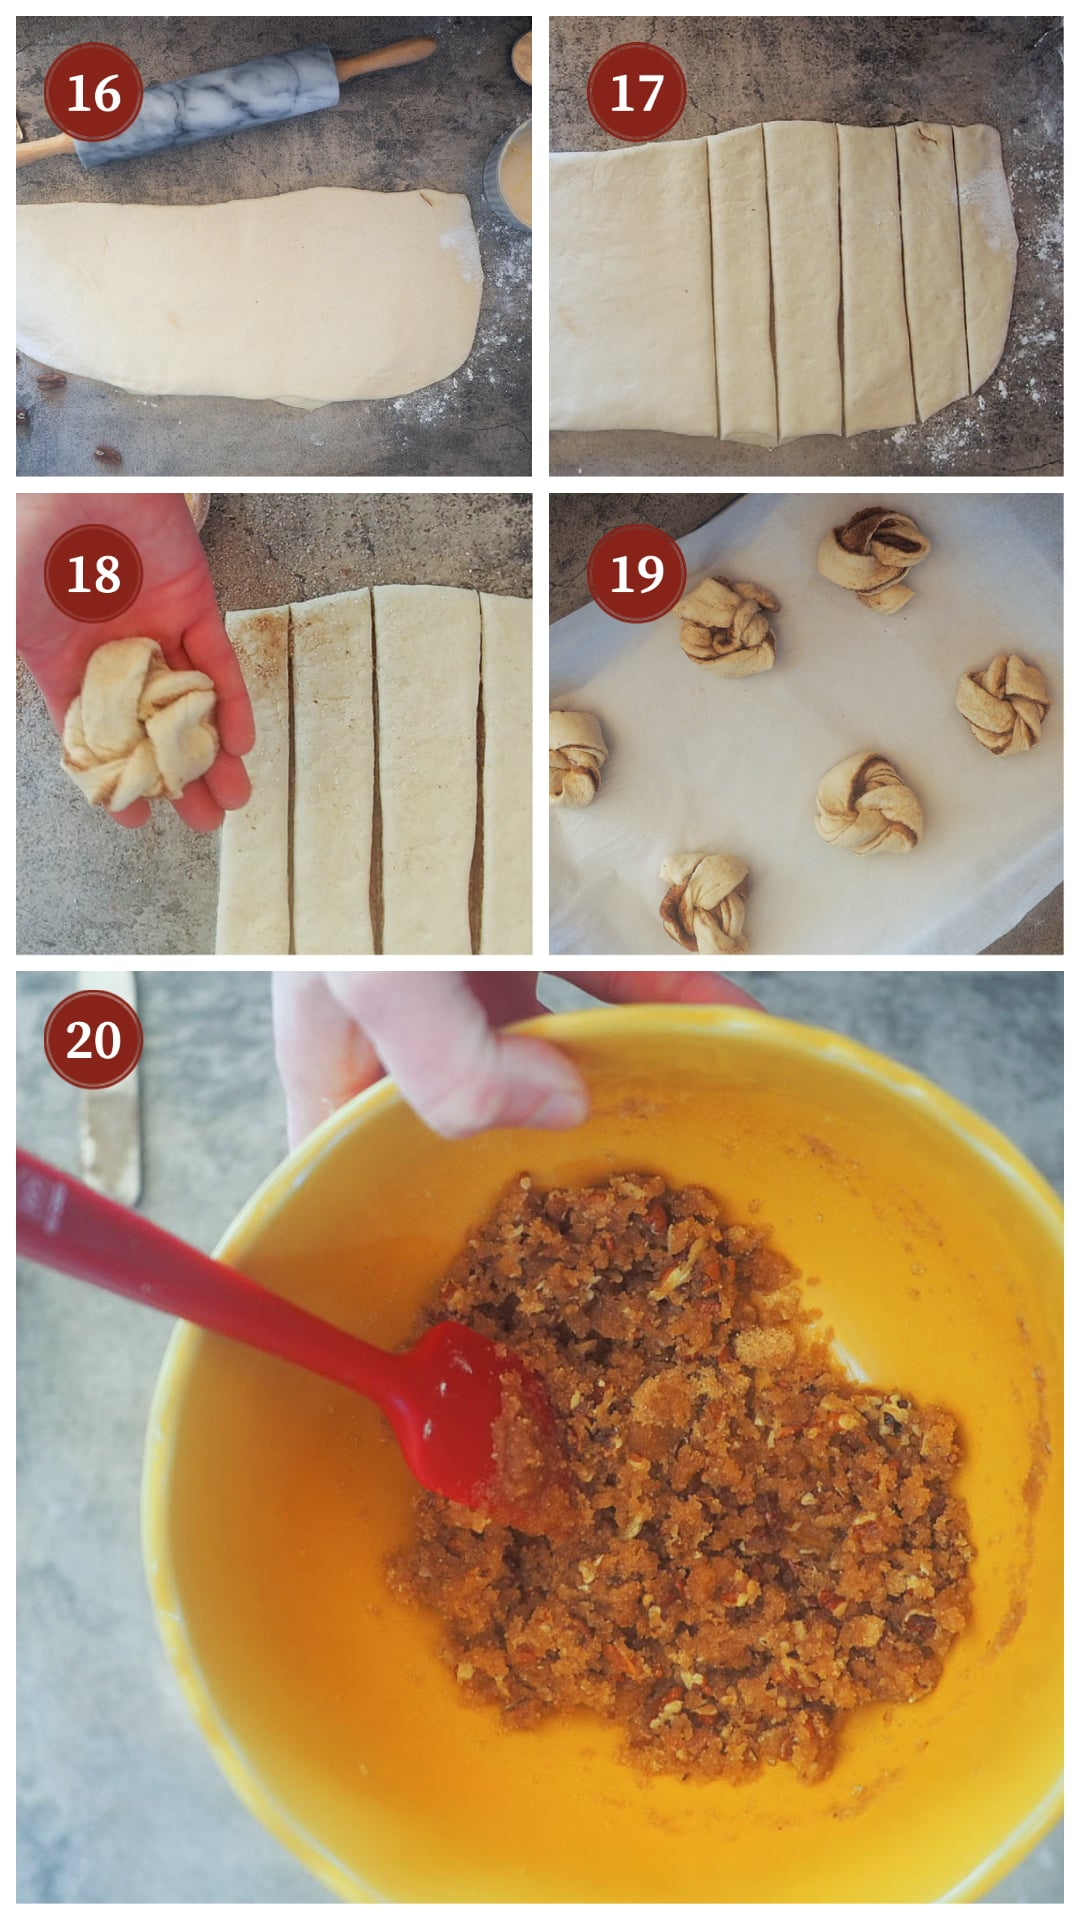 A collage of images showing how to make praline crunch cinnamon roll knots, steps 16 - 20.